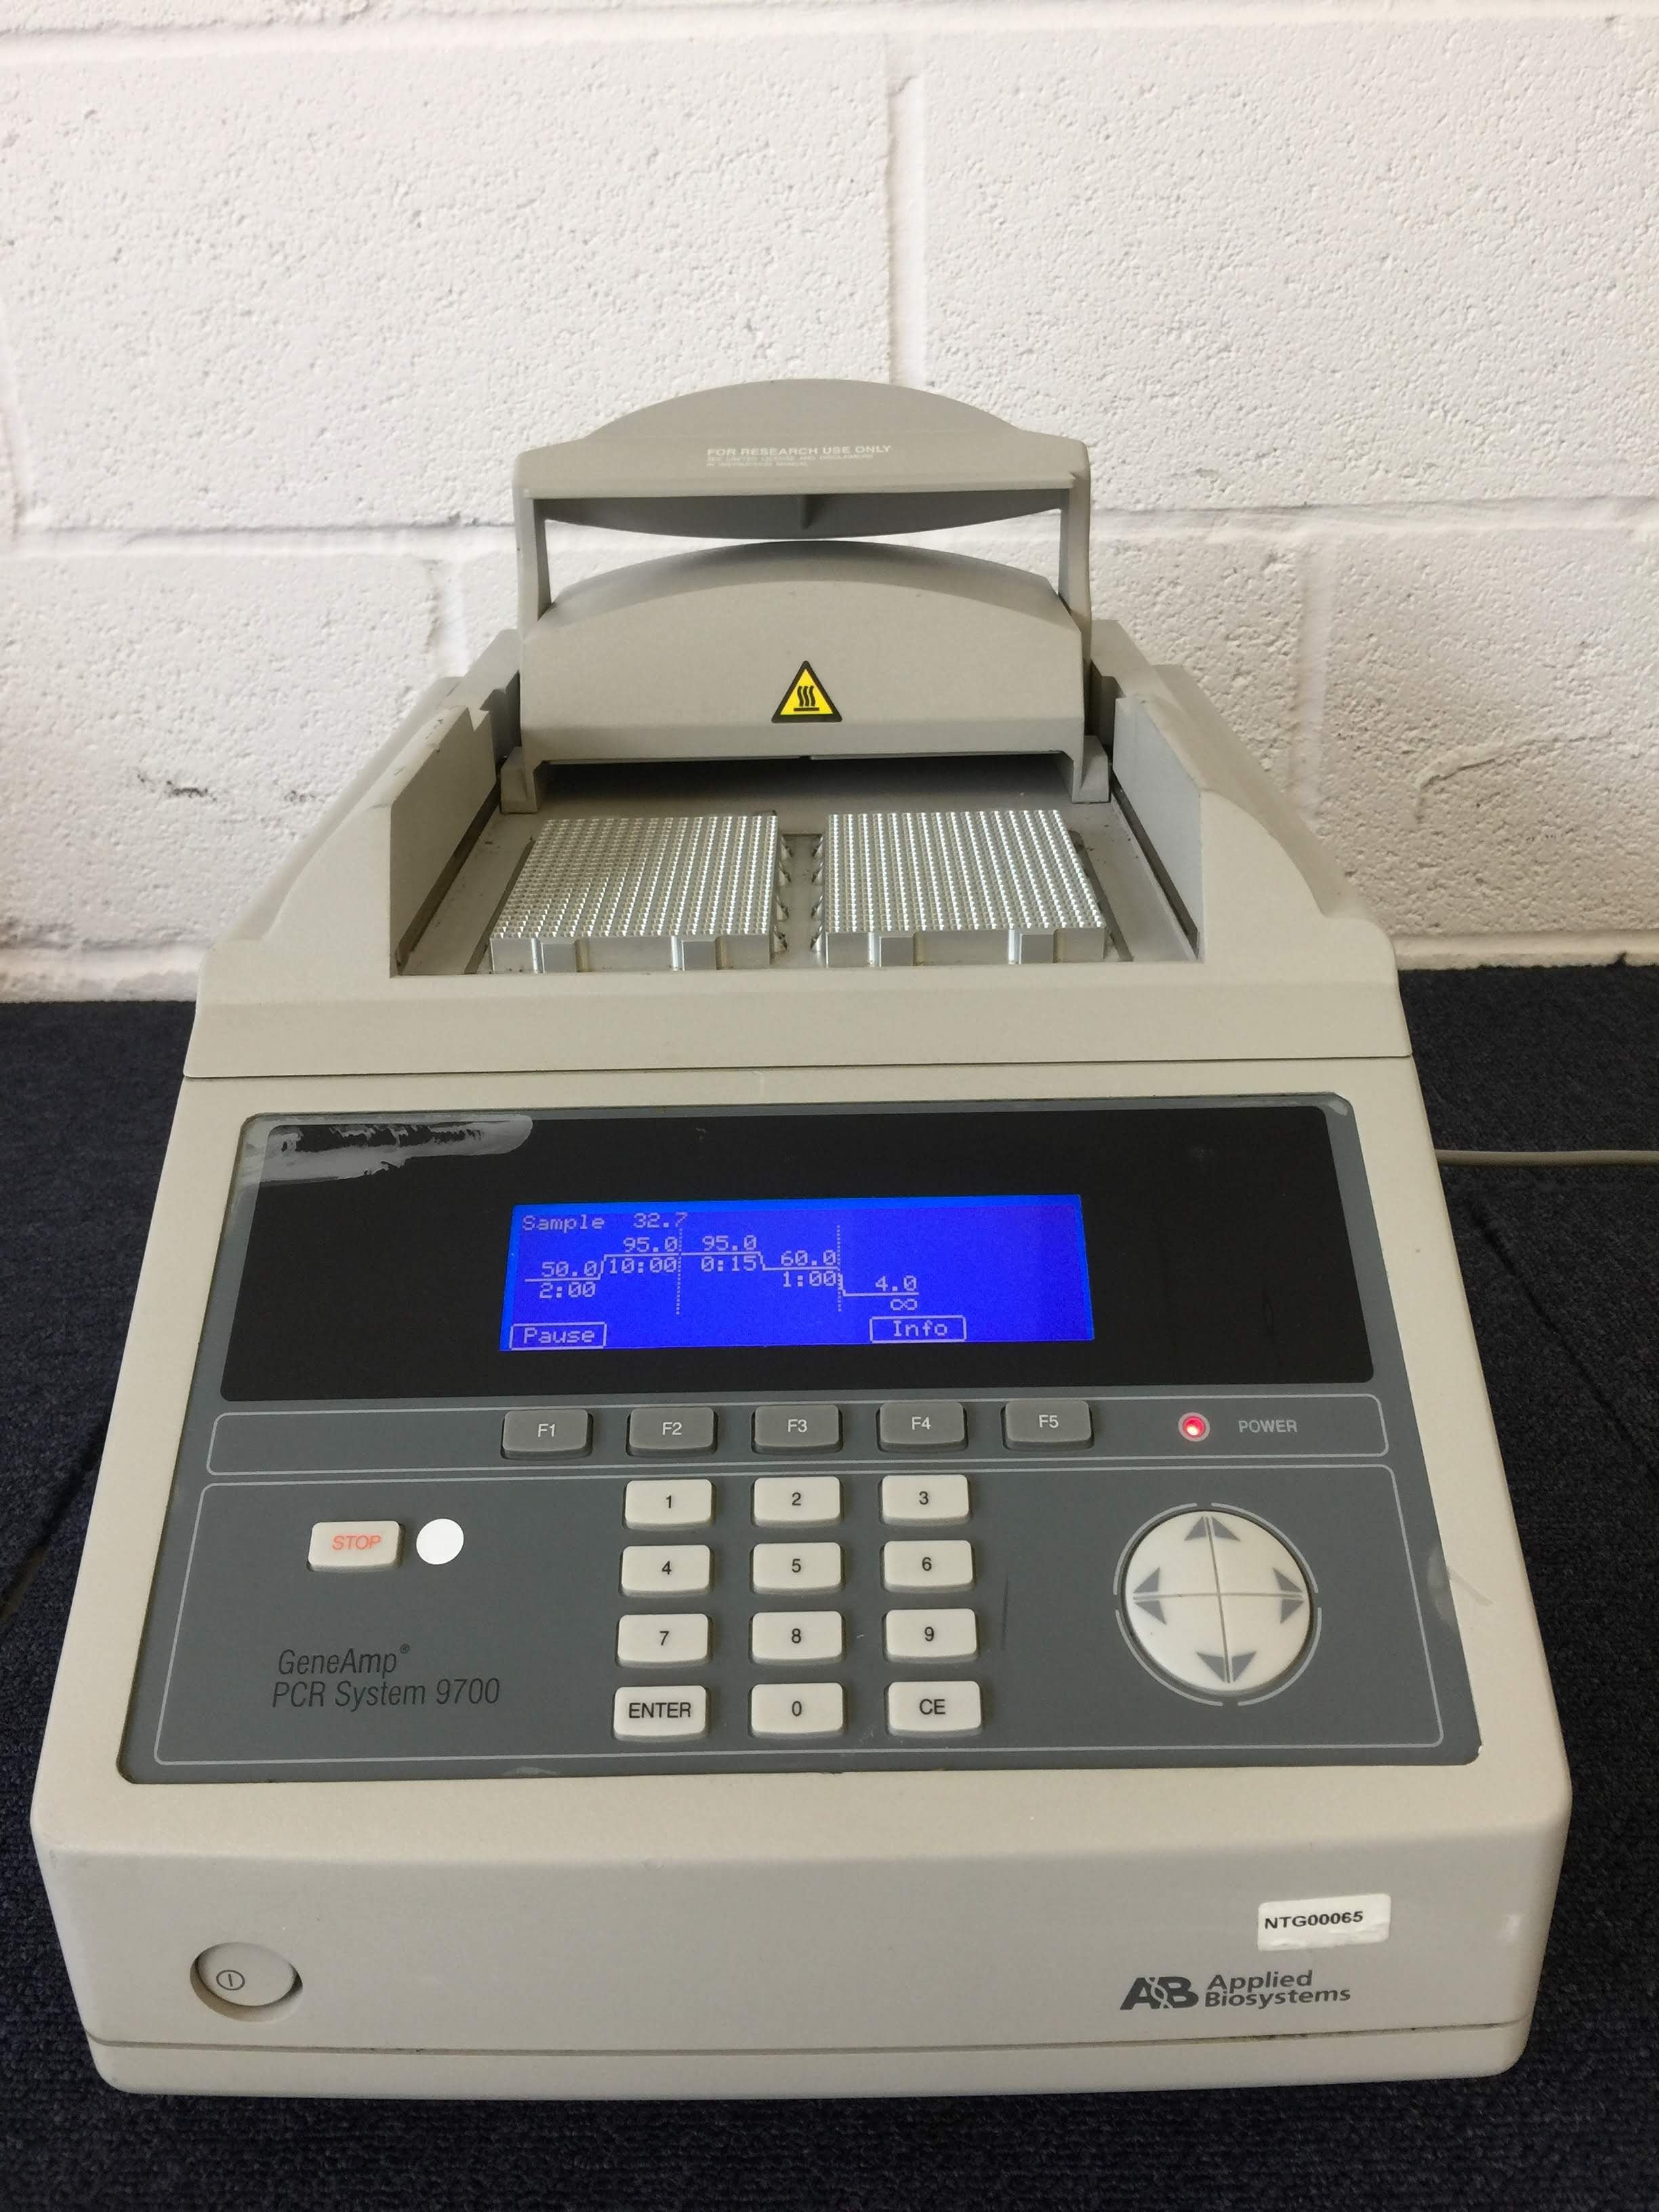 AB GeneAmp PCR System 9700 Thermal Cycler